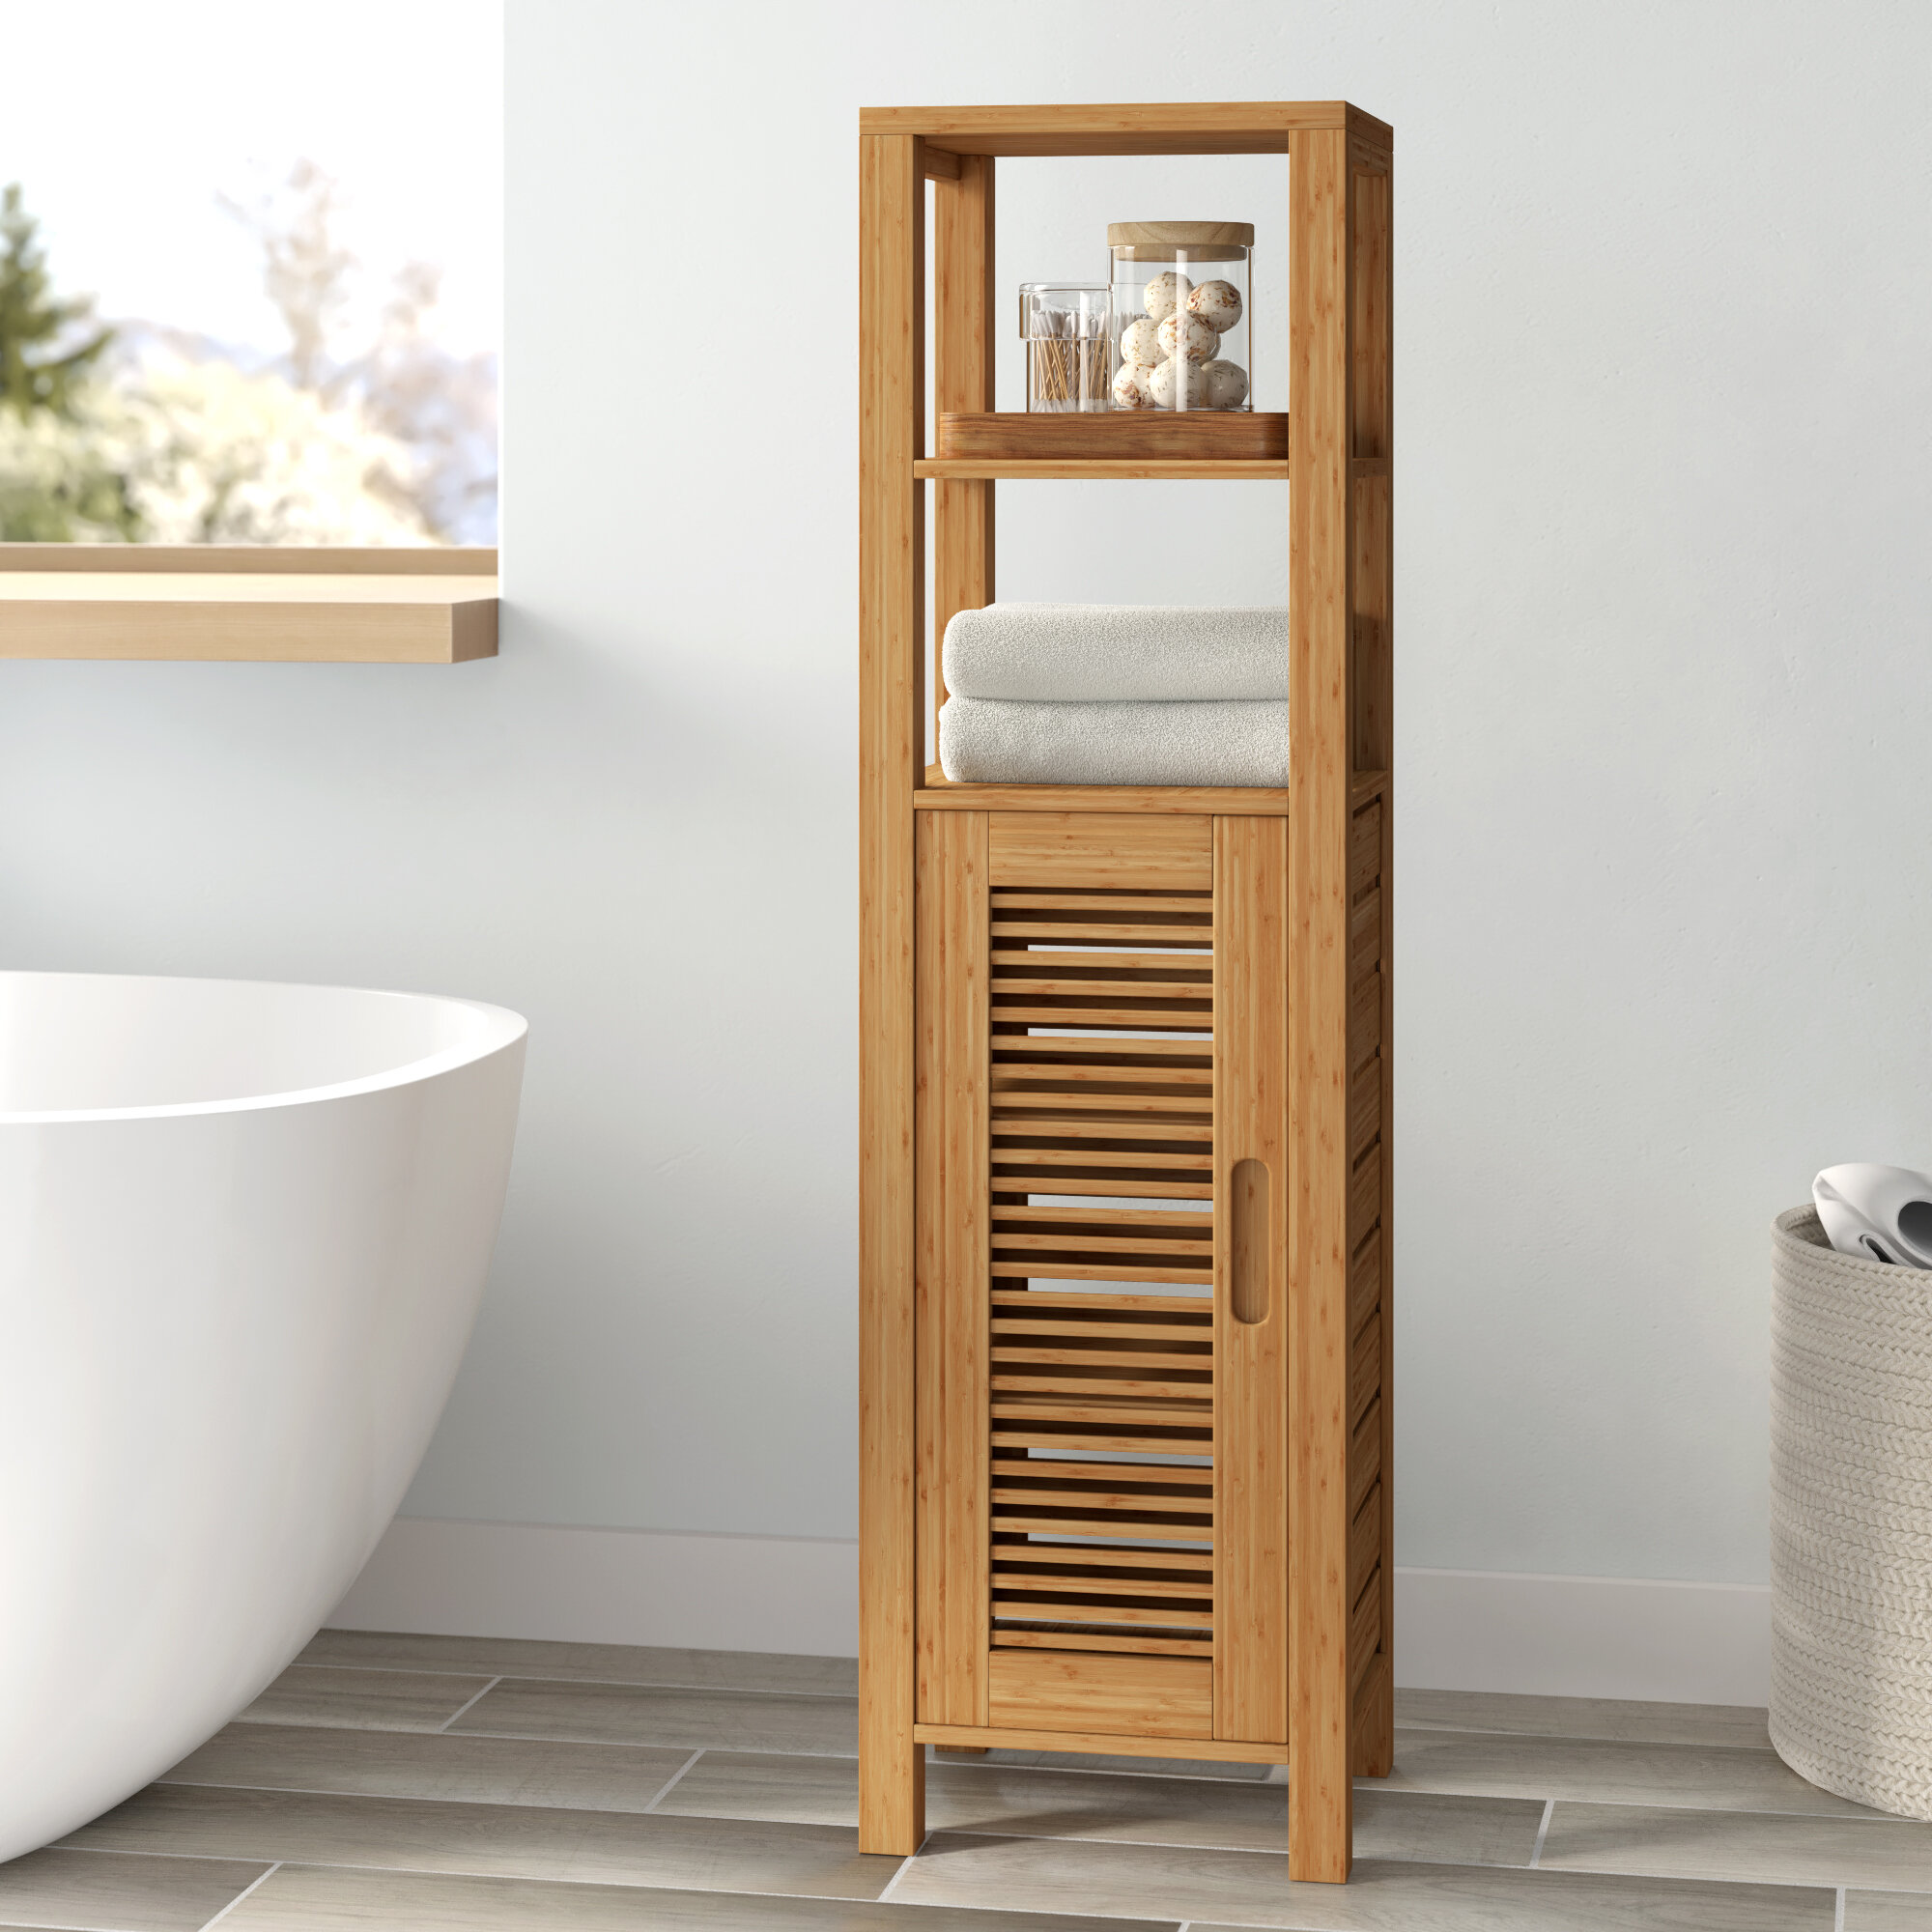 Wayfair Solid Wood Bathroom Cabinets Shelving You Ll Love In 2021